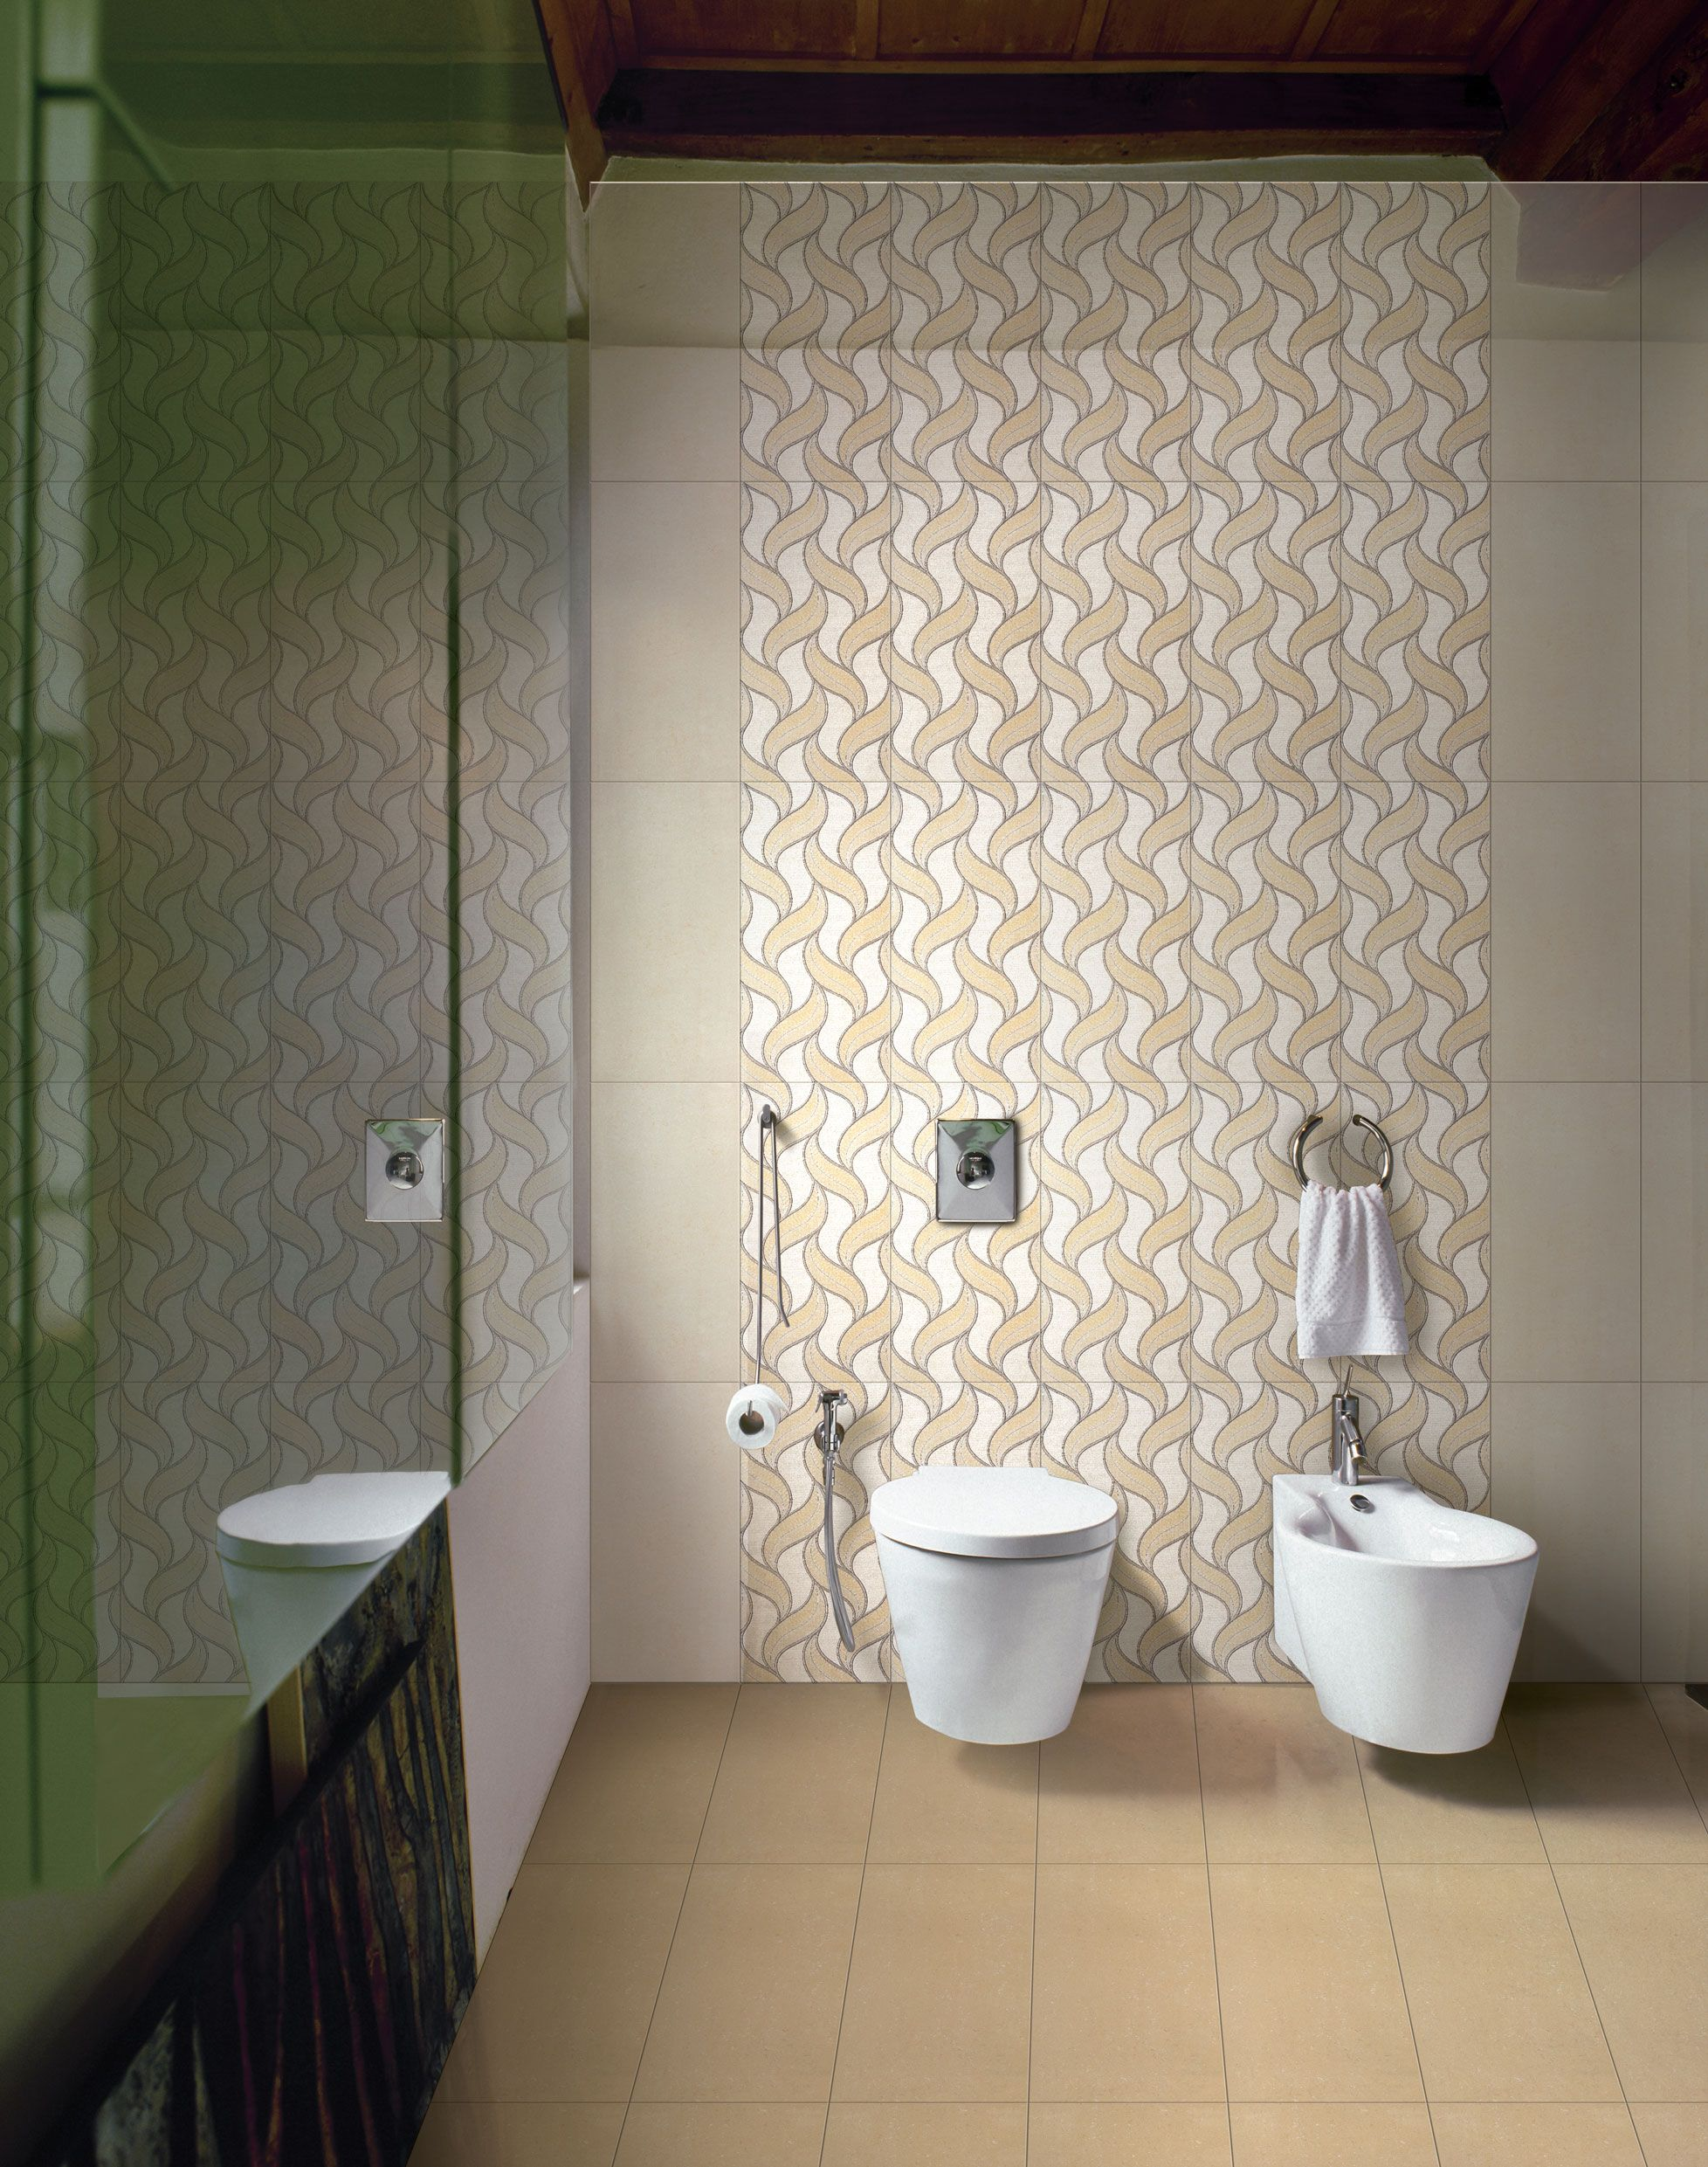 Designer Floor Wall Tiles For Bathroom Bedroom Kitchen Living Room Office Vitrified Exterior Ceramic Online India